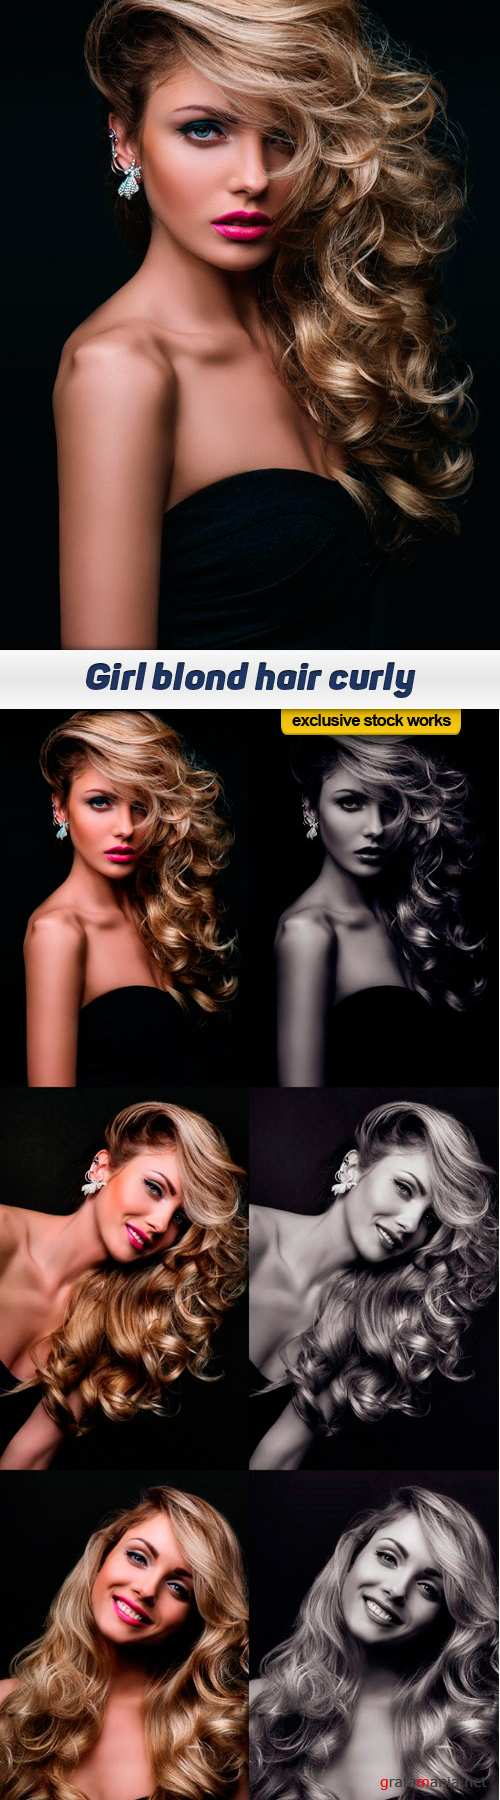 Girl blond hair curly - 6 UHQ JPEG